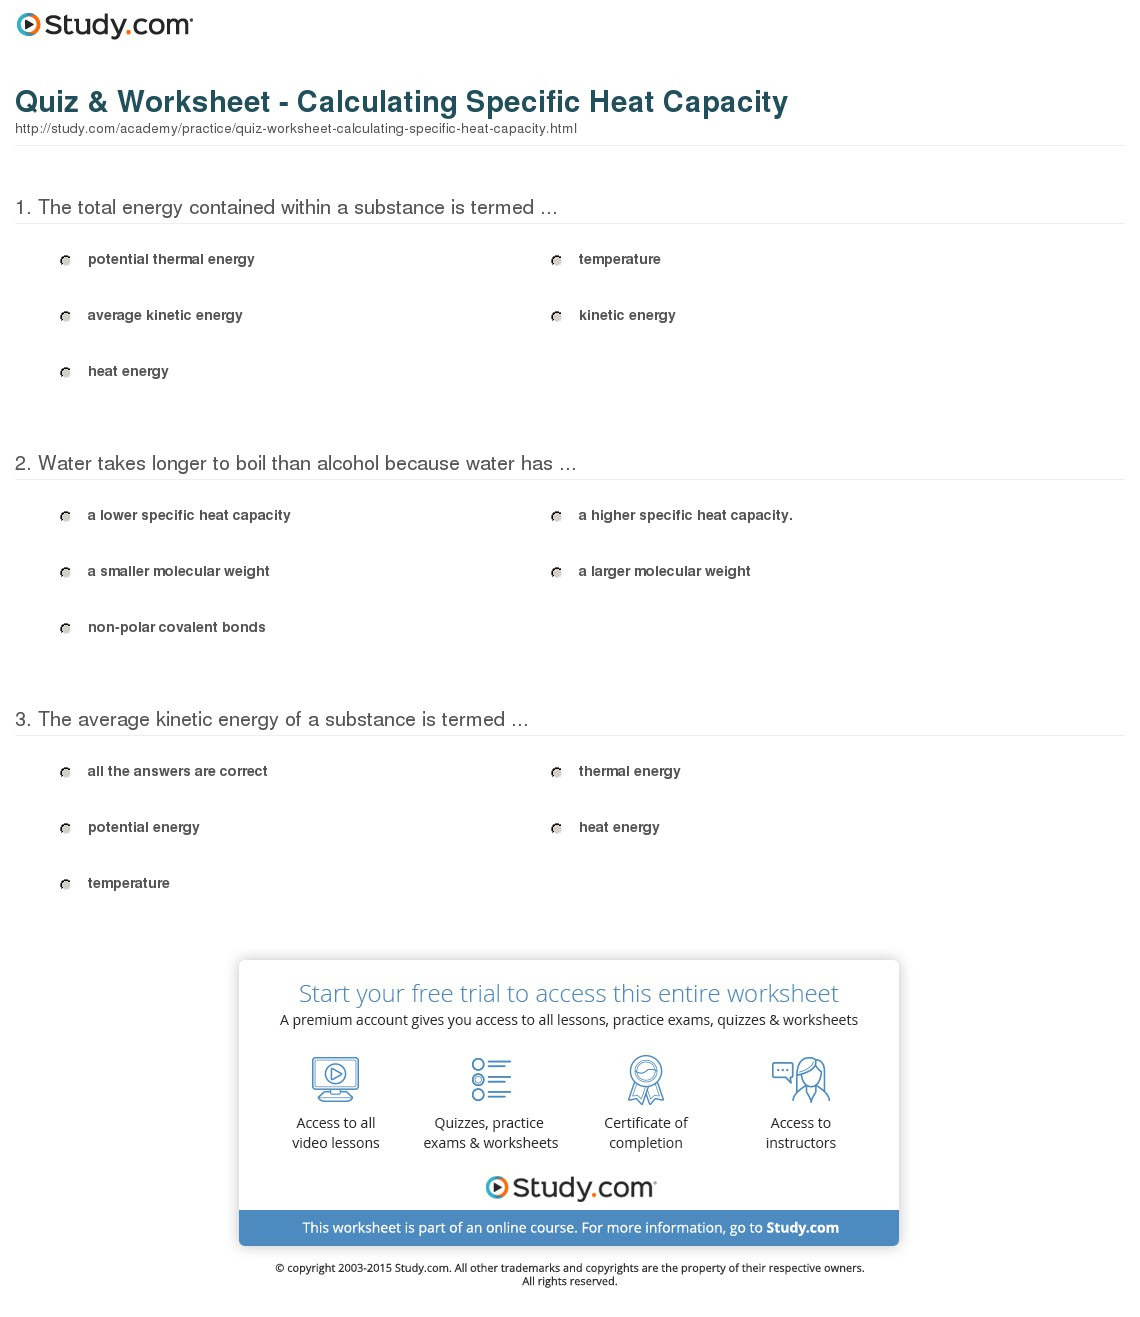 Quiz Worksheet Calculating Specific Heat Capacity